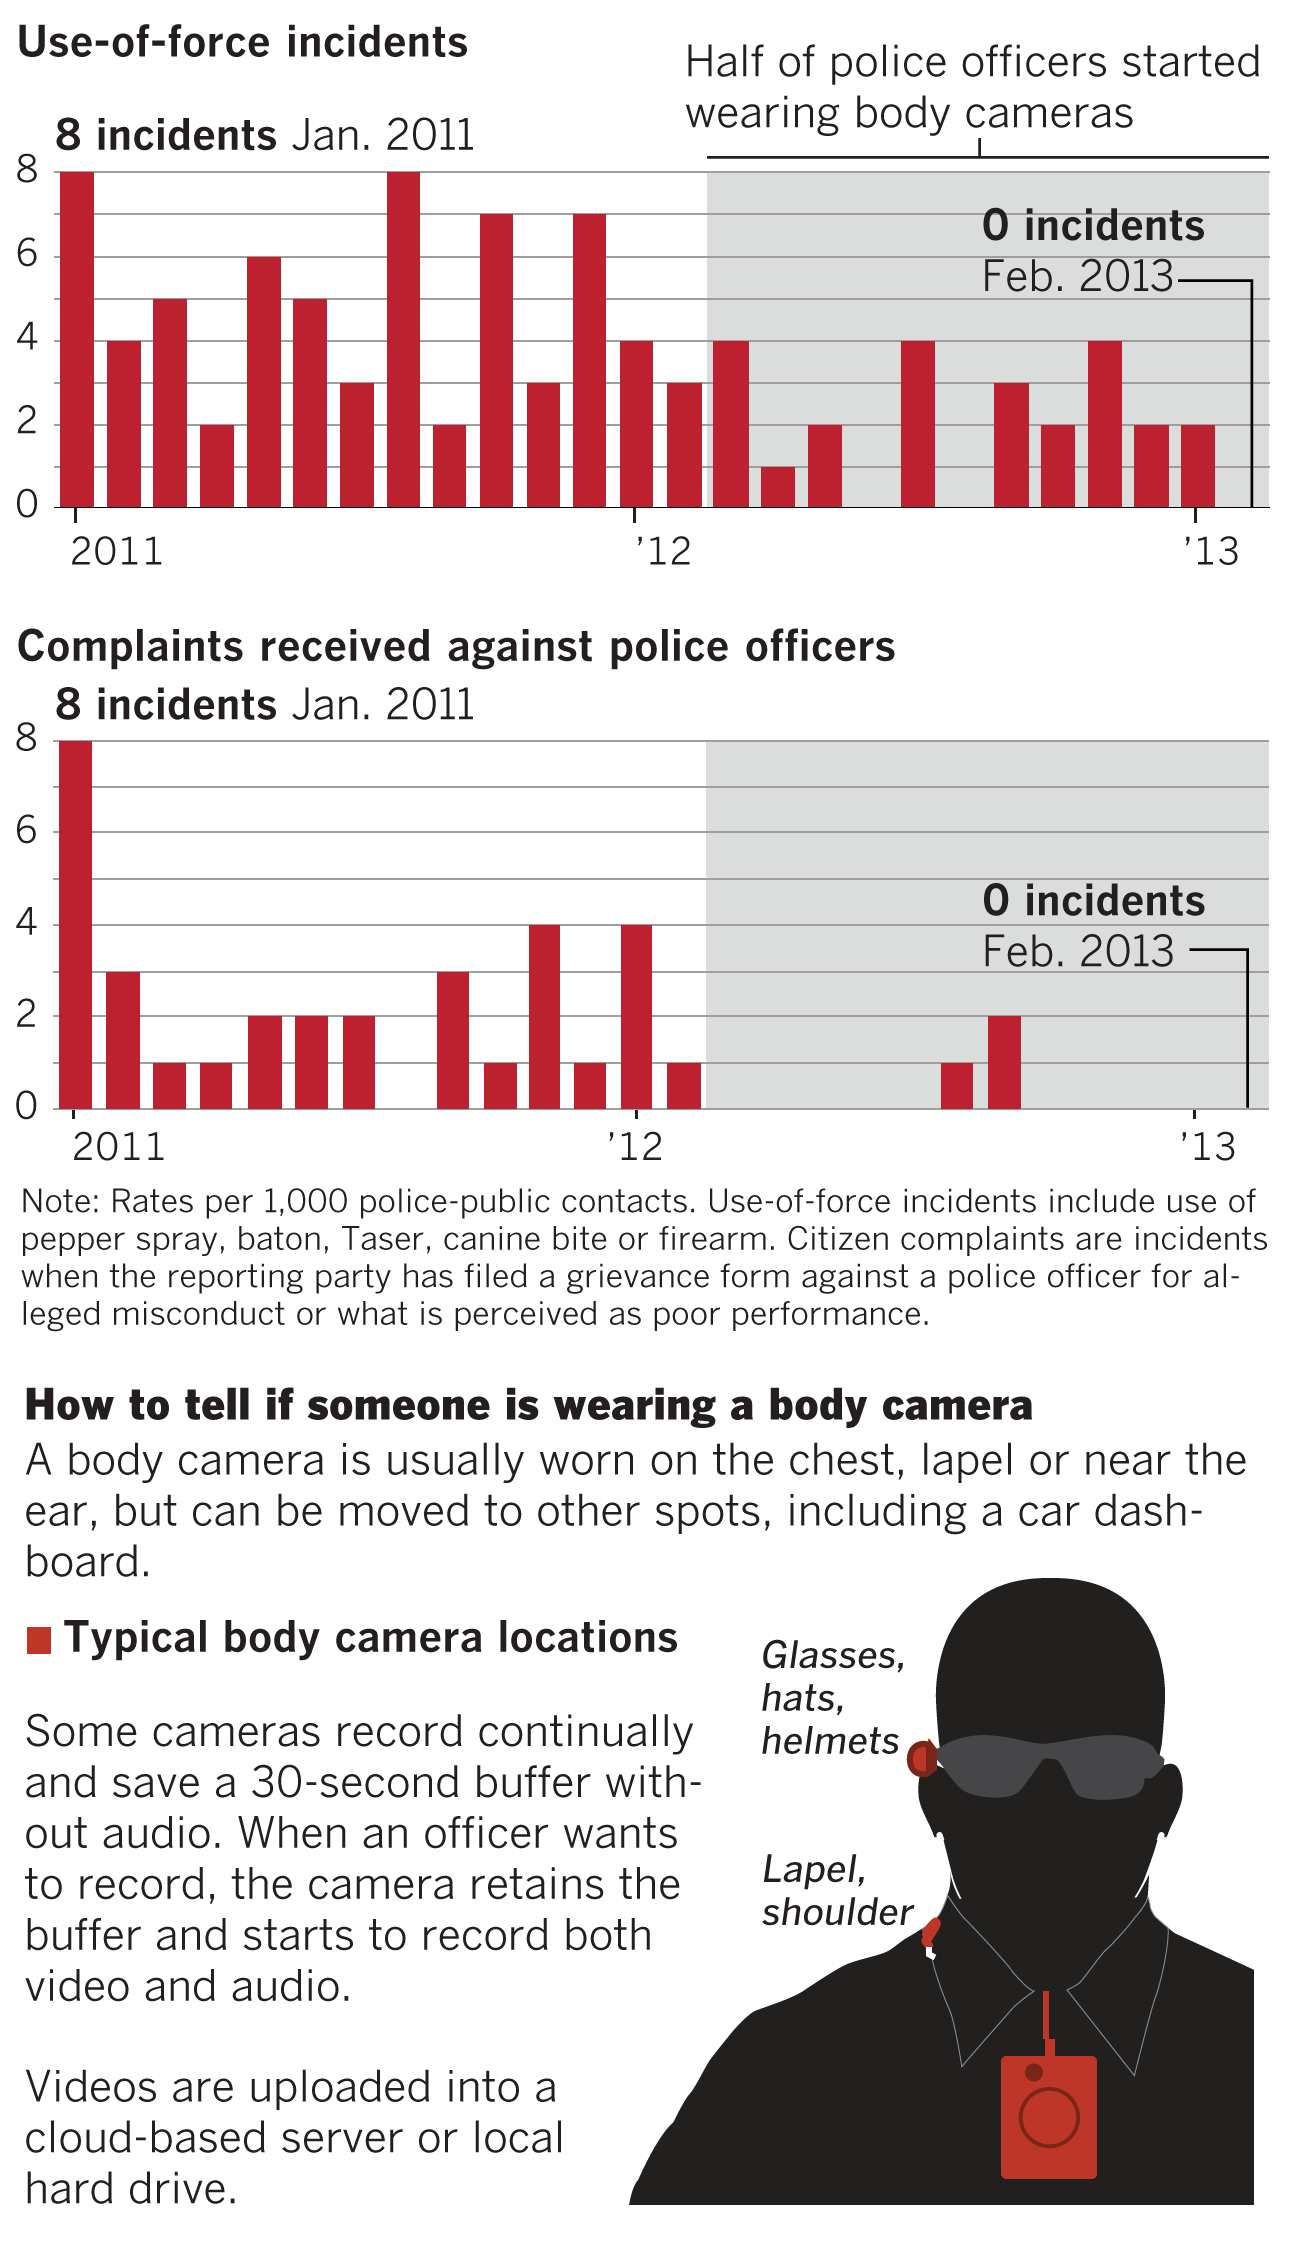 How body cameras influence police behavior